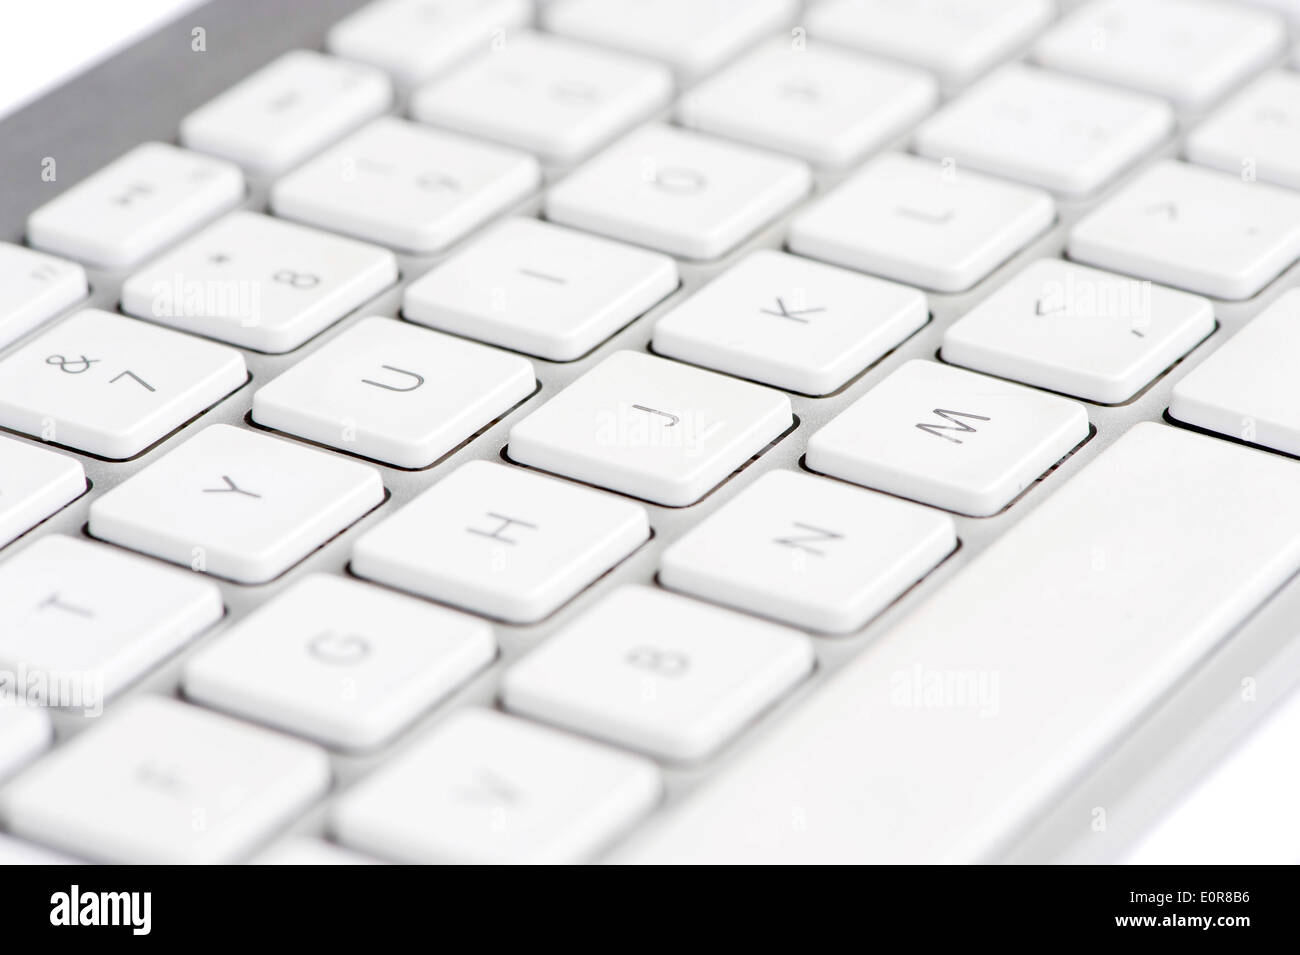 Apple mac white Keyboard focused on the letter J - Stock Image